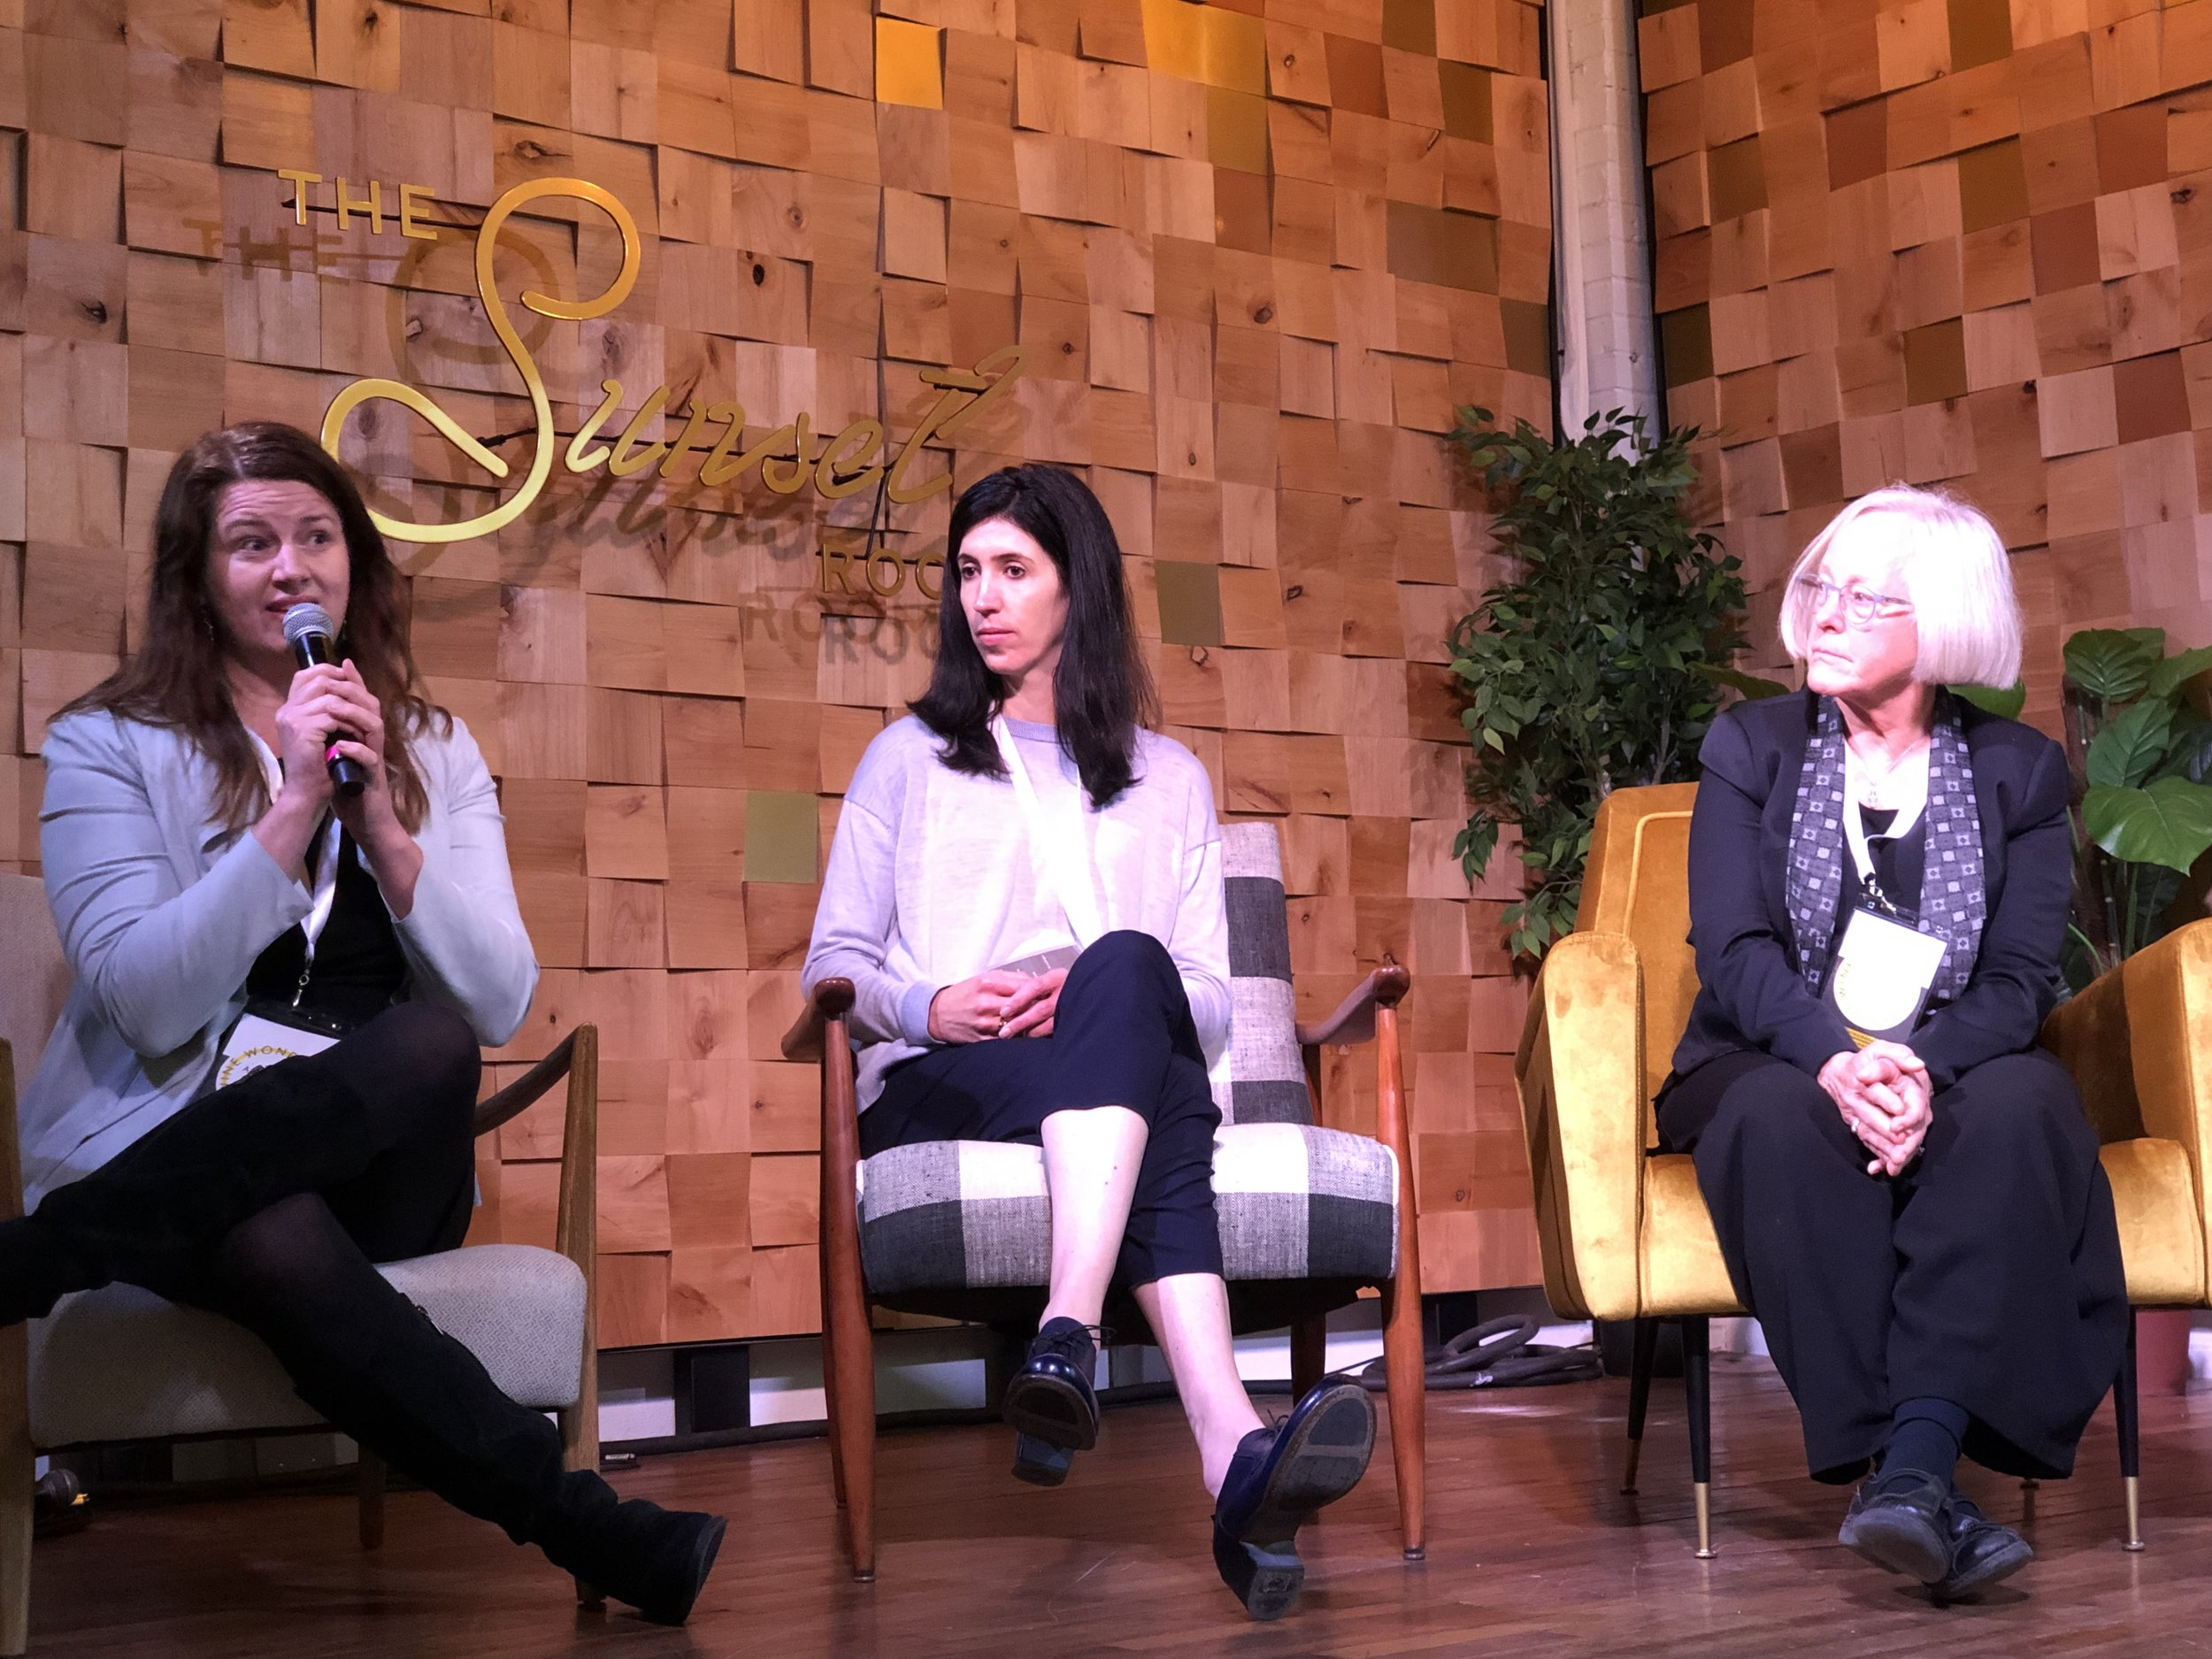 Panelists Amy Bess Cook (WOW), Samantha Sheehan (Poe, etc.) & Cathy Corison (Corison Winery) - WWOW March 2, 2019